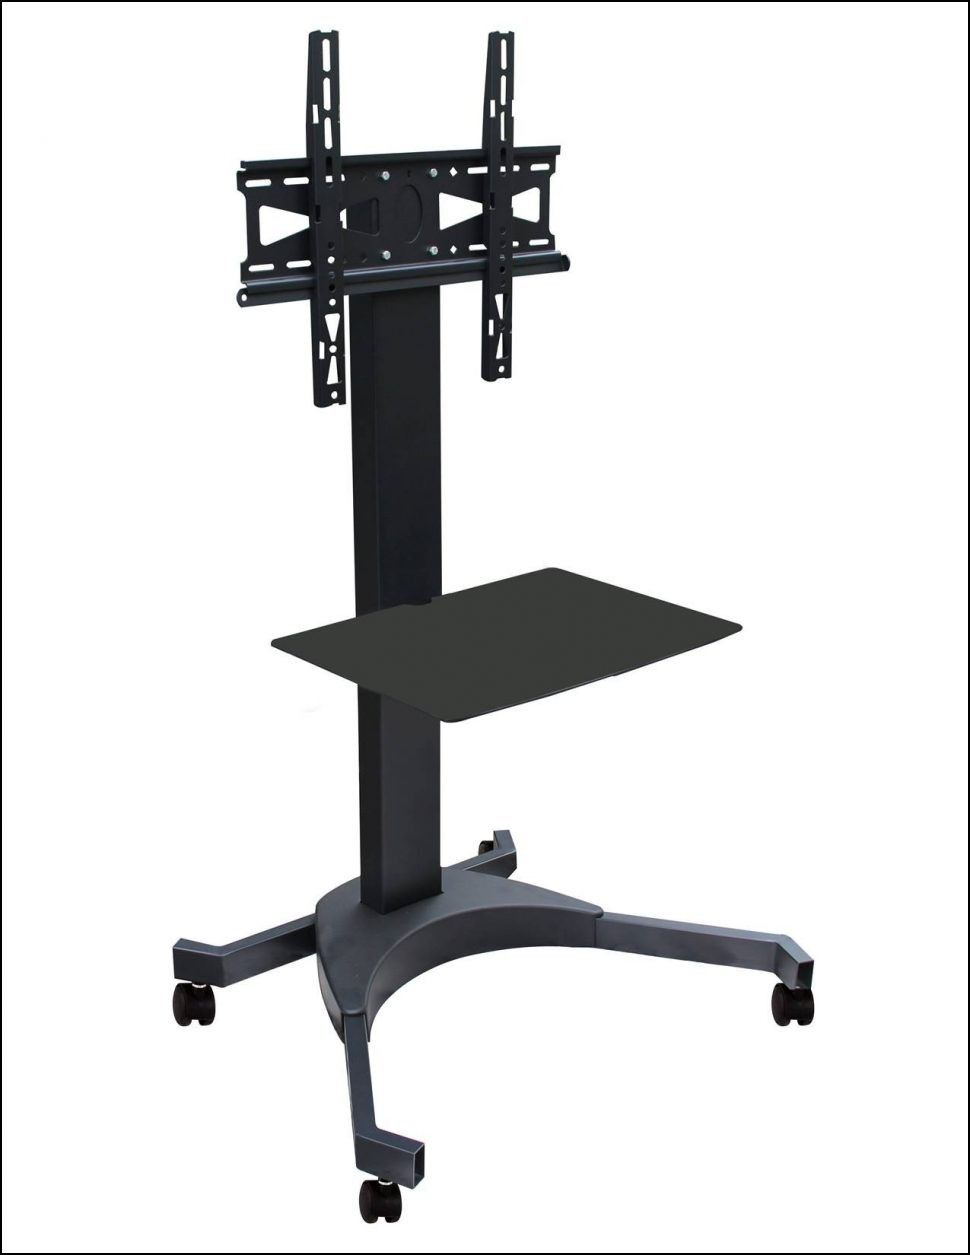 Portable Tv Stand On Wheels Tv Stand On Wheels Portable Tv